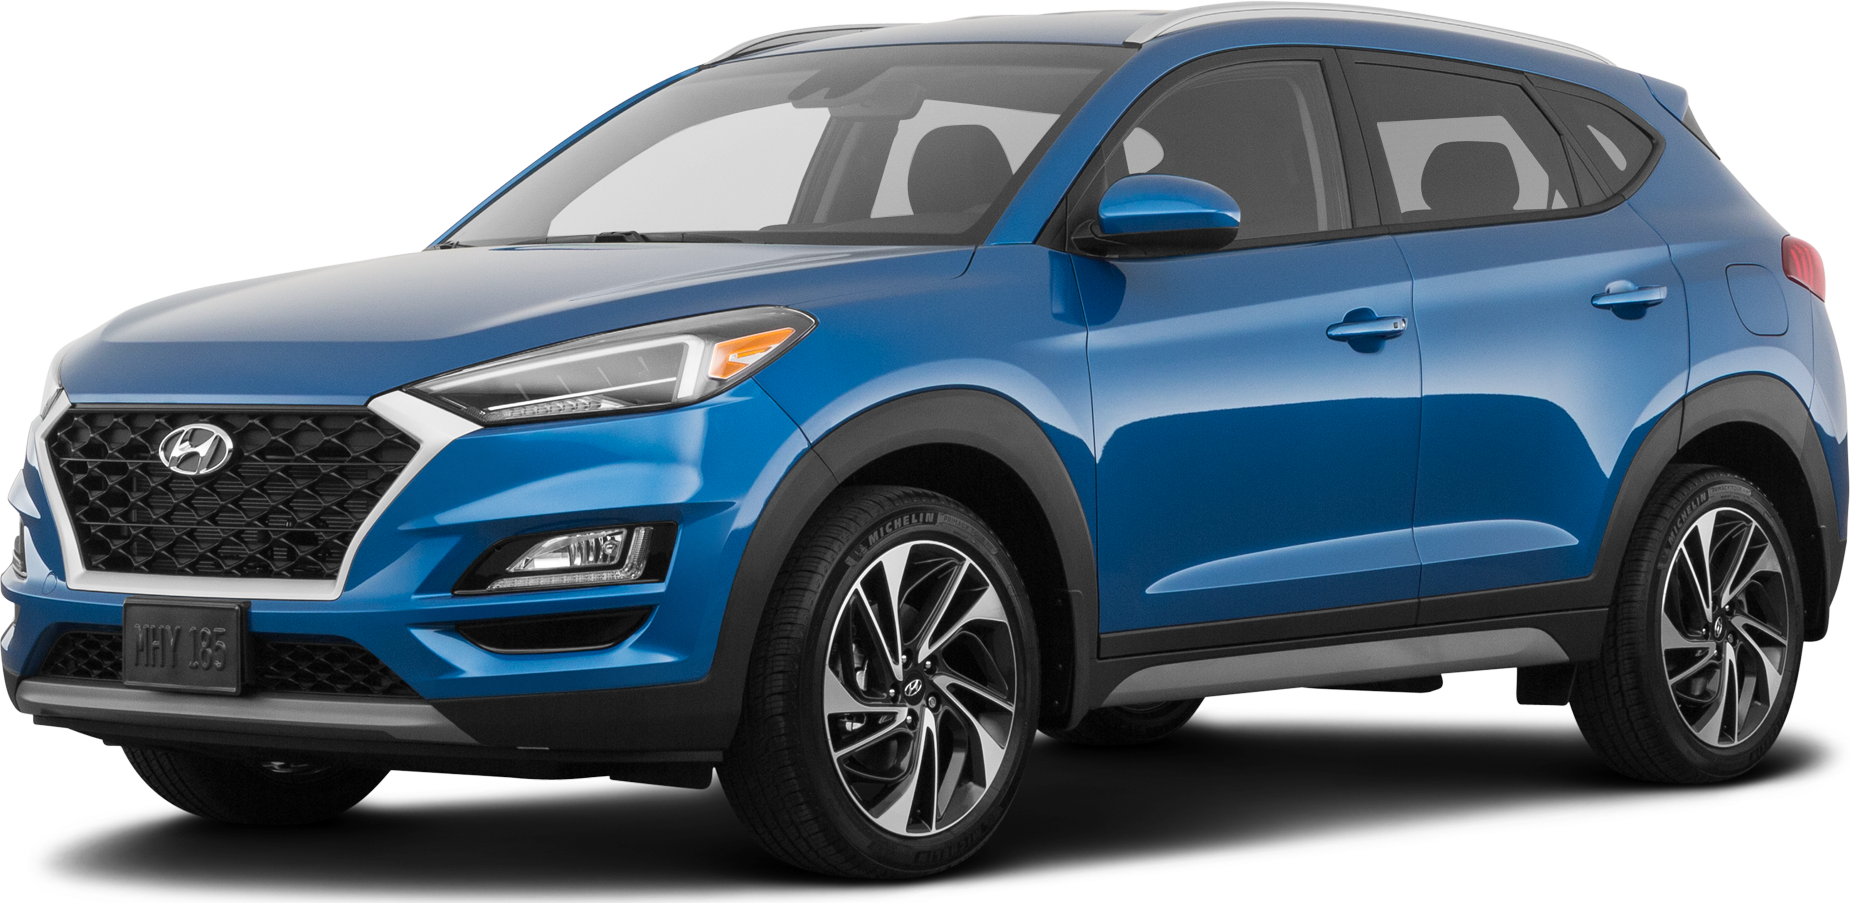 2019 hyundai tucson se lease special imx auto group. Black Bedroom Furniture Sets. Home Design Ideas